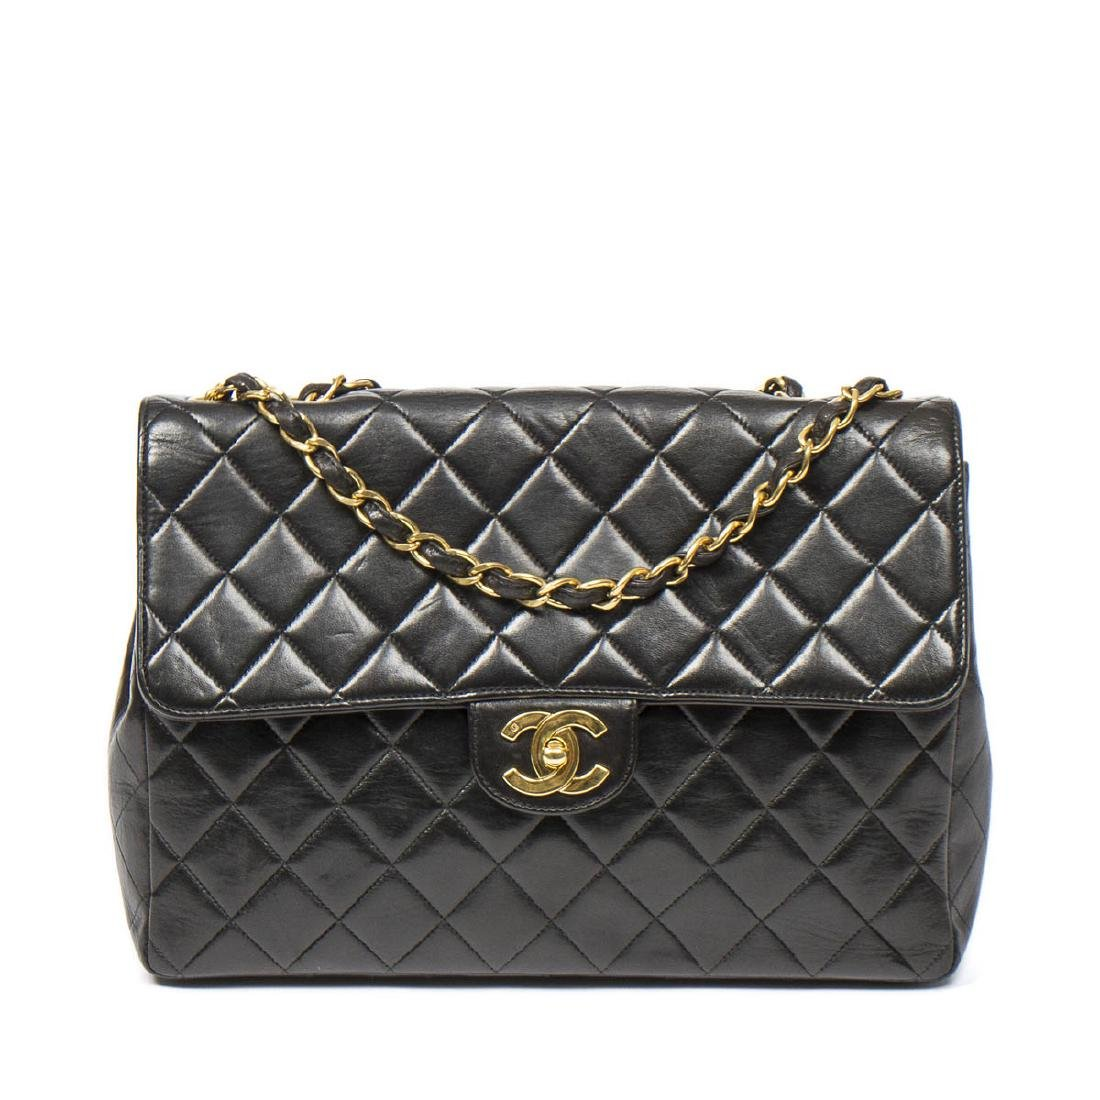 Chanel Maxi Flap in Black Quilted Leather